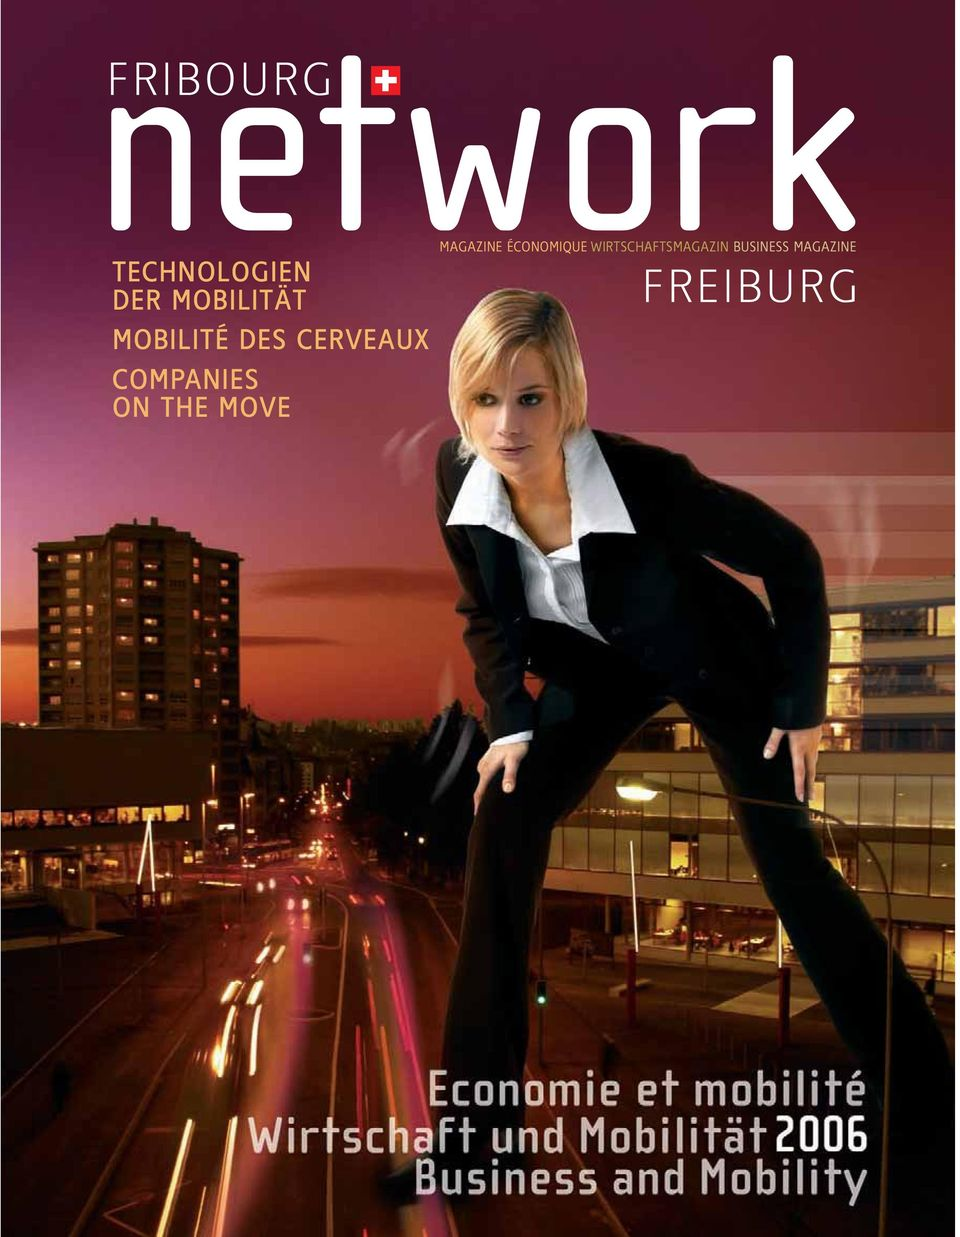 ON THE MOVE MAGAZINE ÉCONOMIQUE